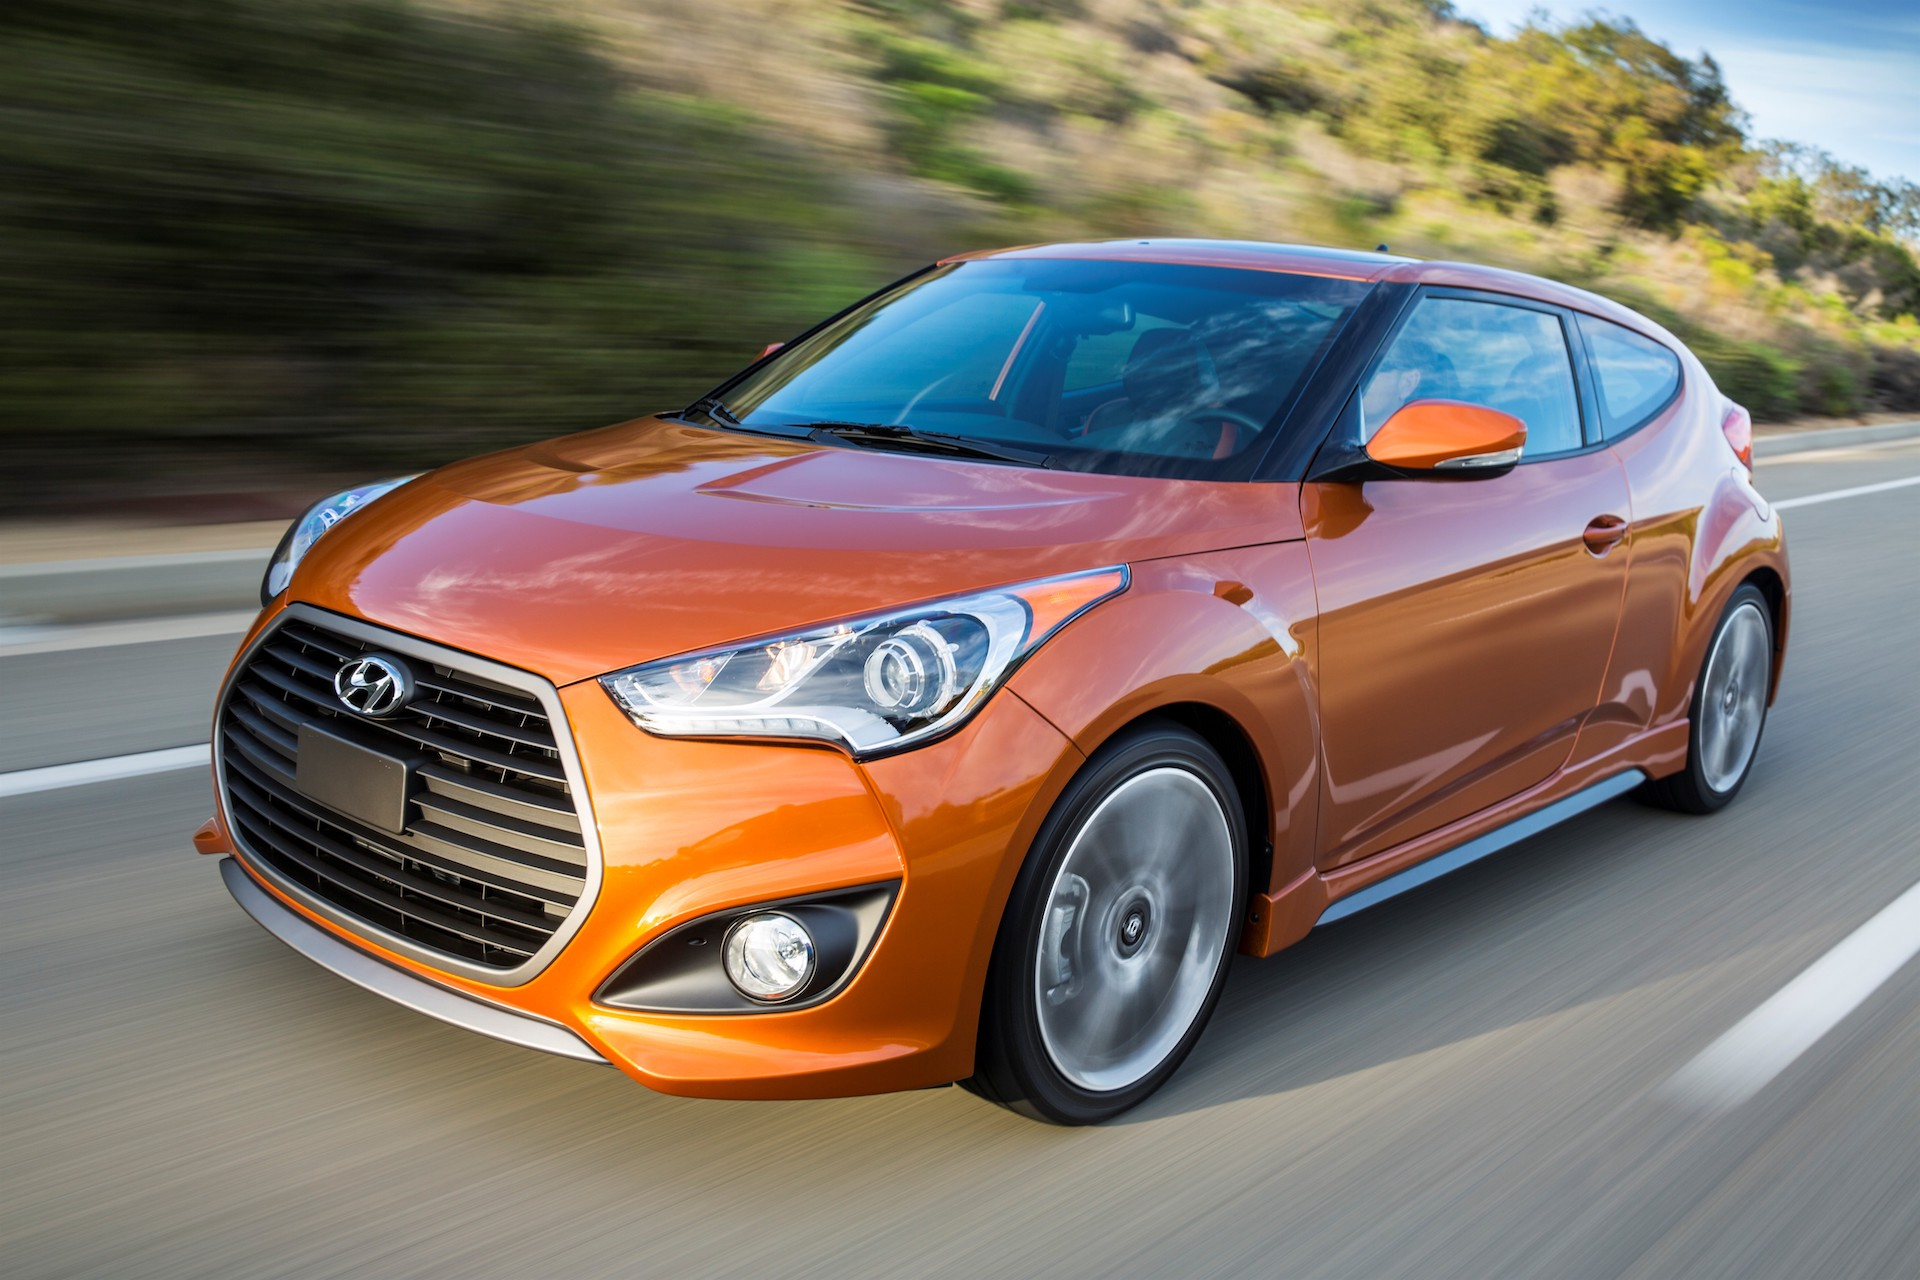 2017 hyundai veloster gas mileage the car connection. Black Bedroom Furniture Sets. Home Design Ideas